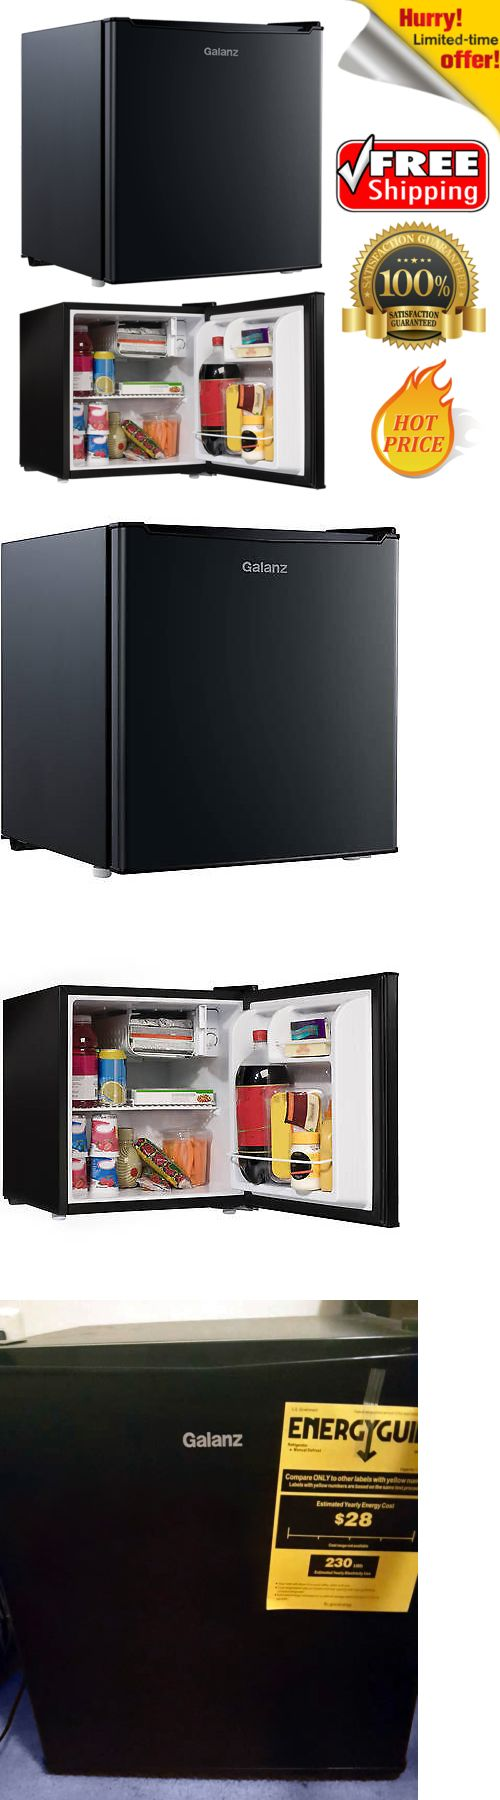 Mini Fridges 71262: Compact Mini Dorm Small Fridge Refrigerator 1.7 Cu Ft Cooler Office Party Beer -> BUY IT NOW ONLY: $75.39 on eBay!